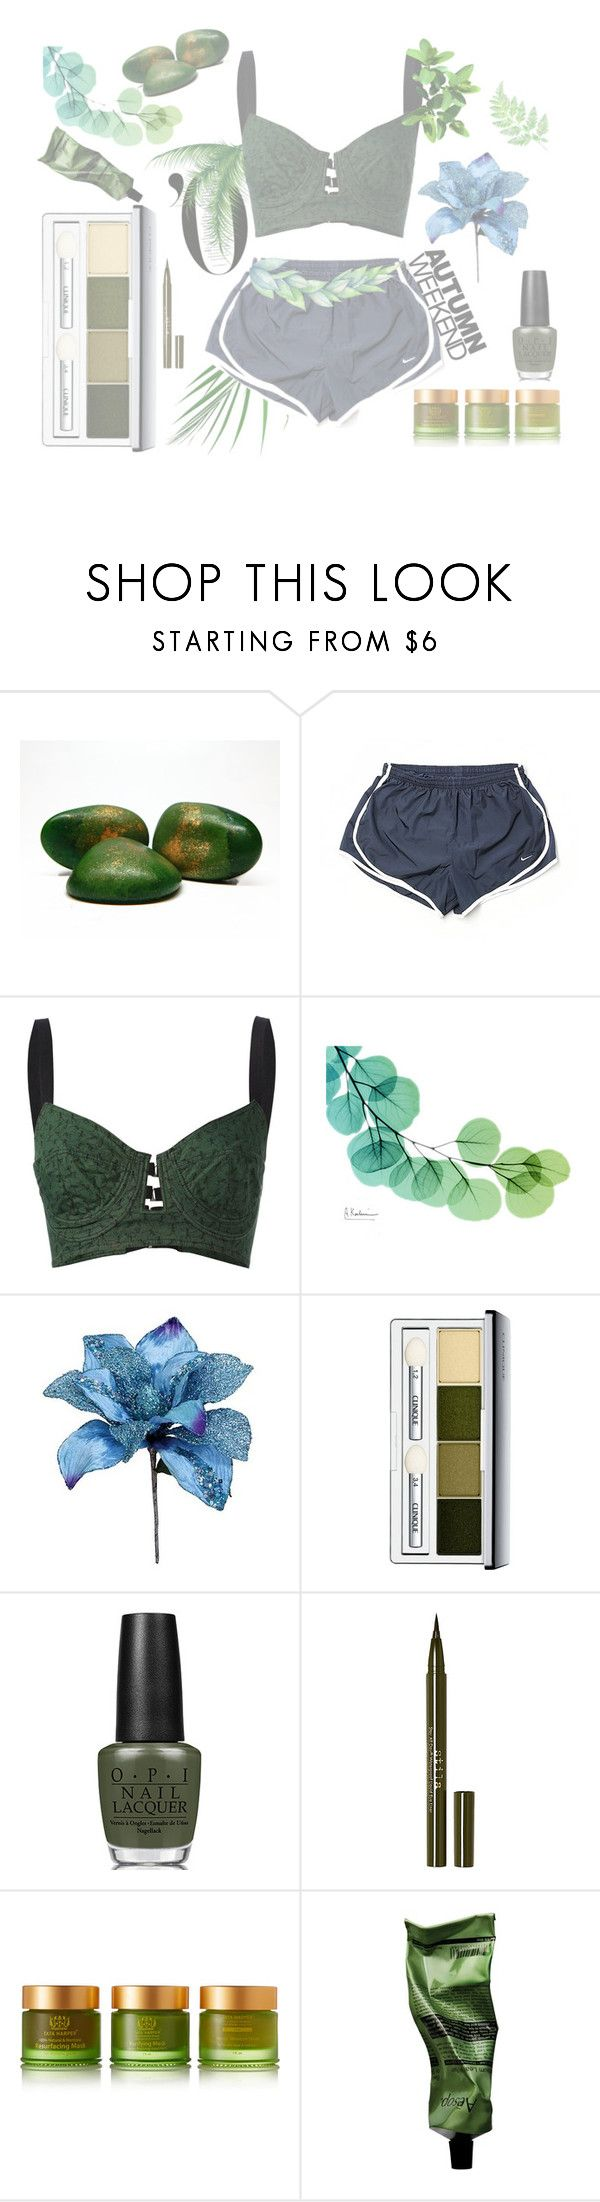 """Lives"" by galaxy-moon-stars ❤ liked on Polyvore featuring NIKE, Jean-Paul Gaultier, Clinique, OPI, Stila, Tata Harper, Aesop and plants"